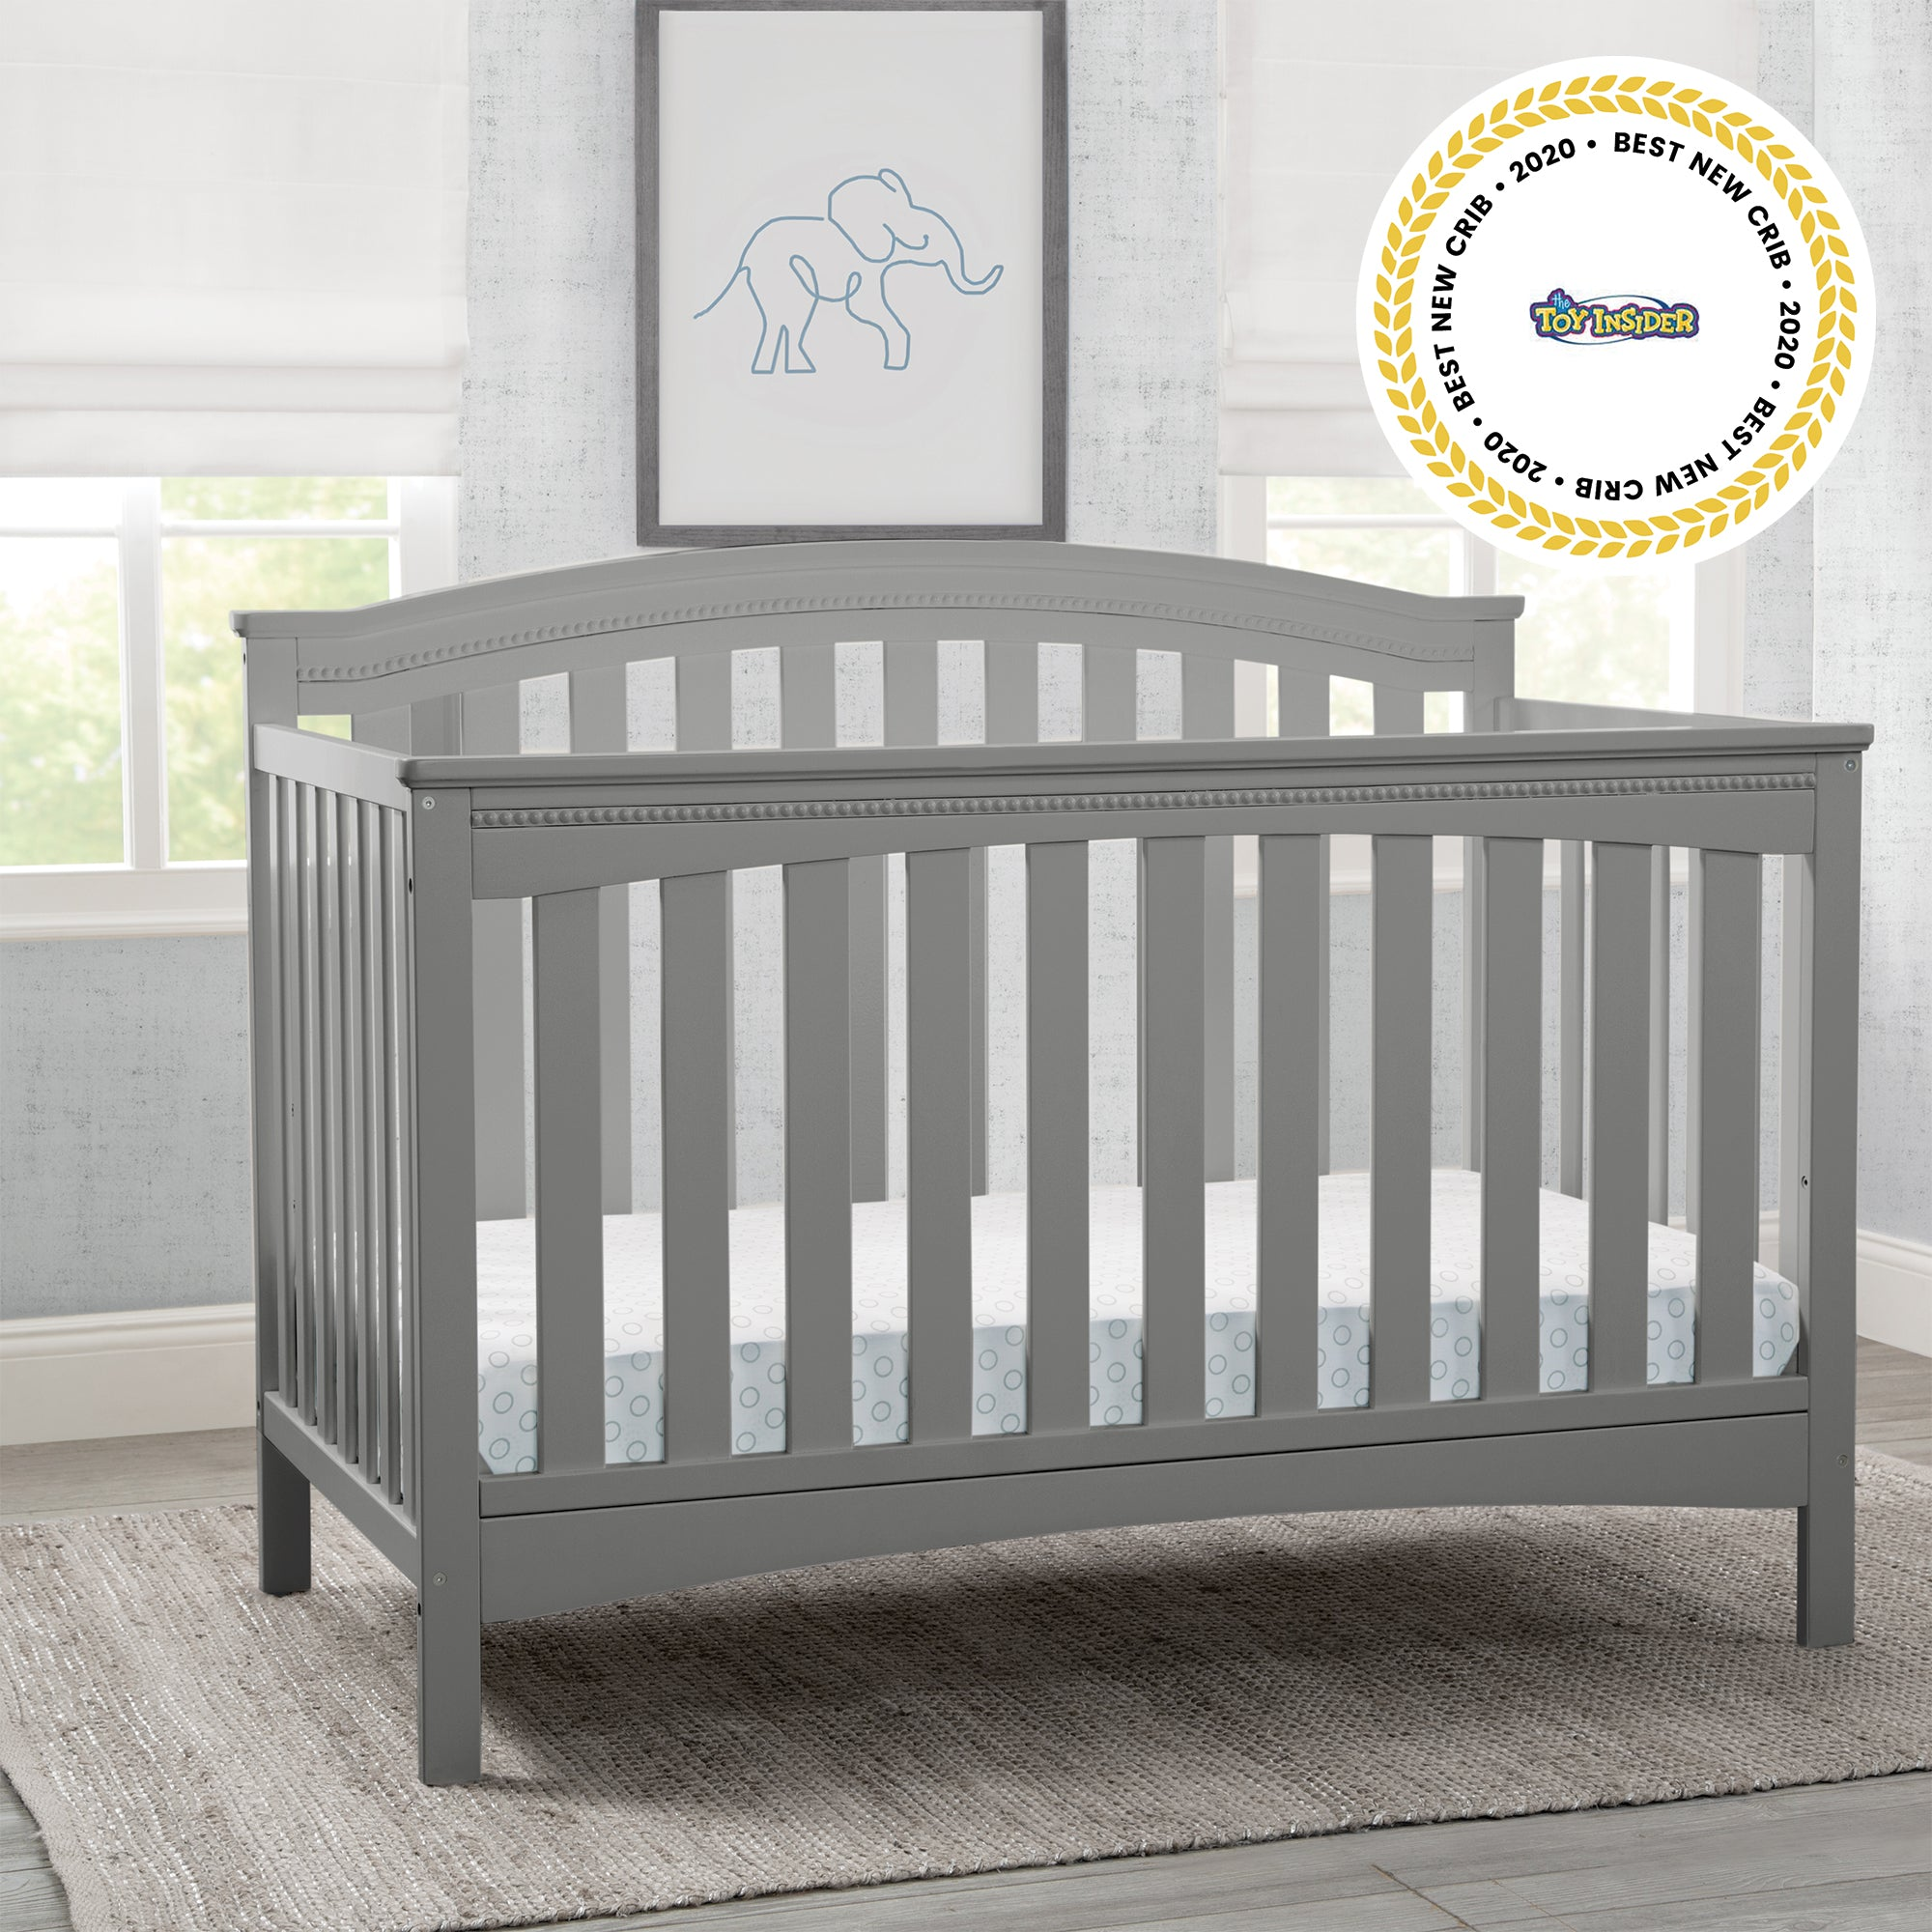 Waverley 6 in 1 Convertible Crib Grey 026